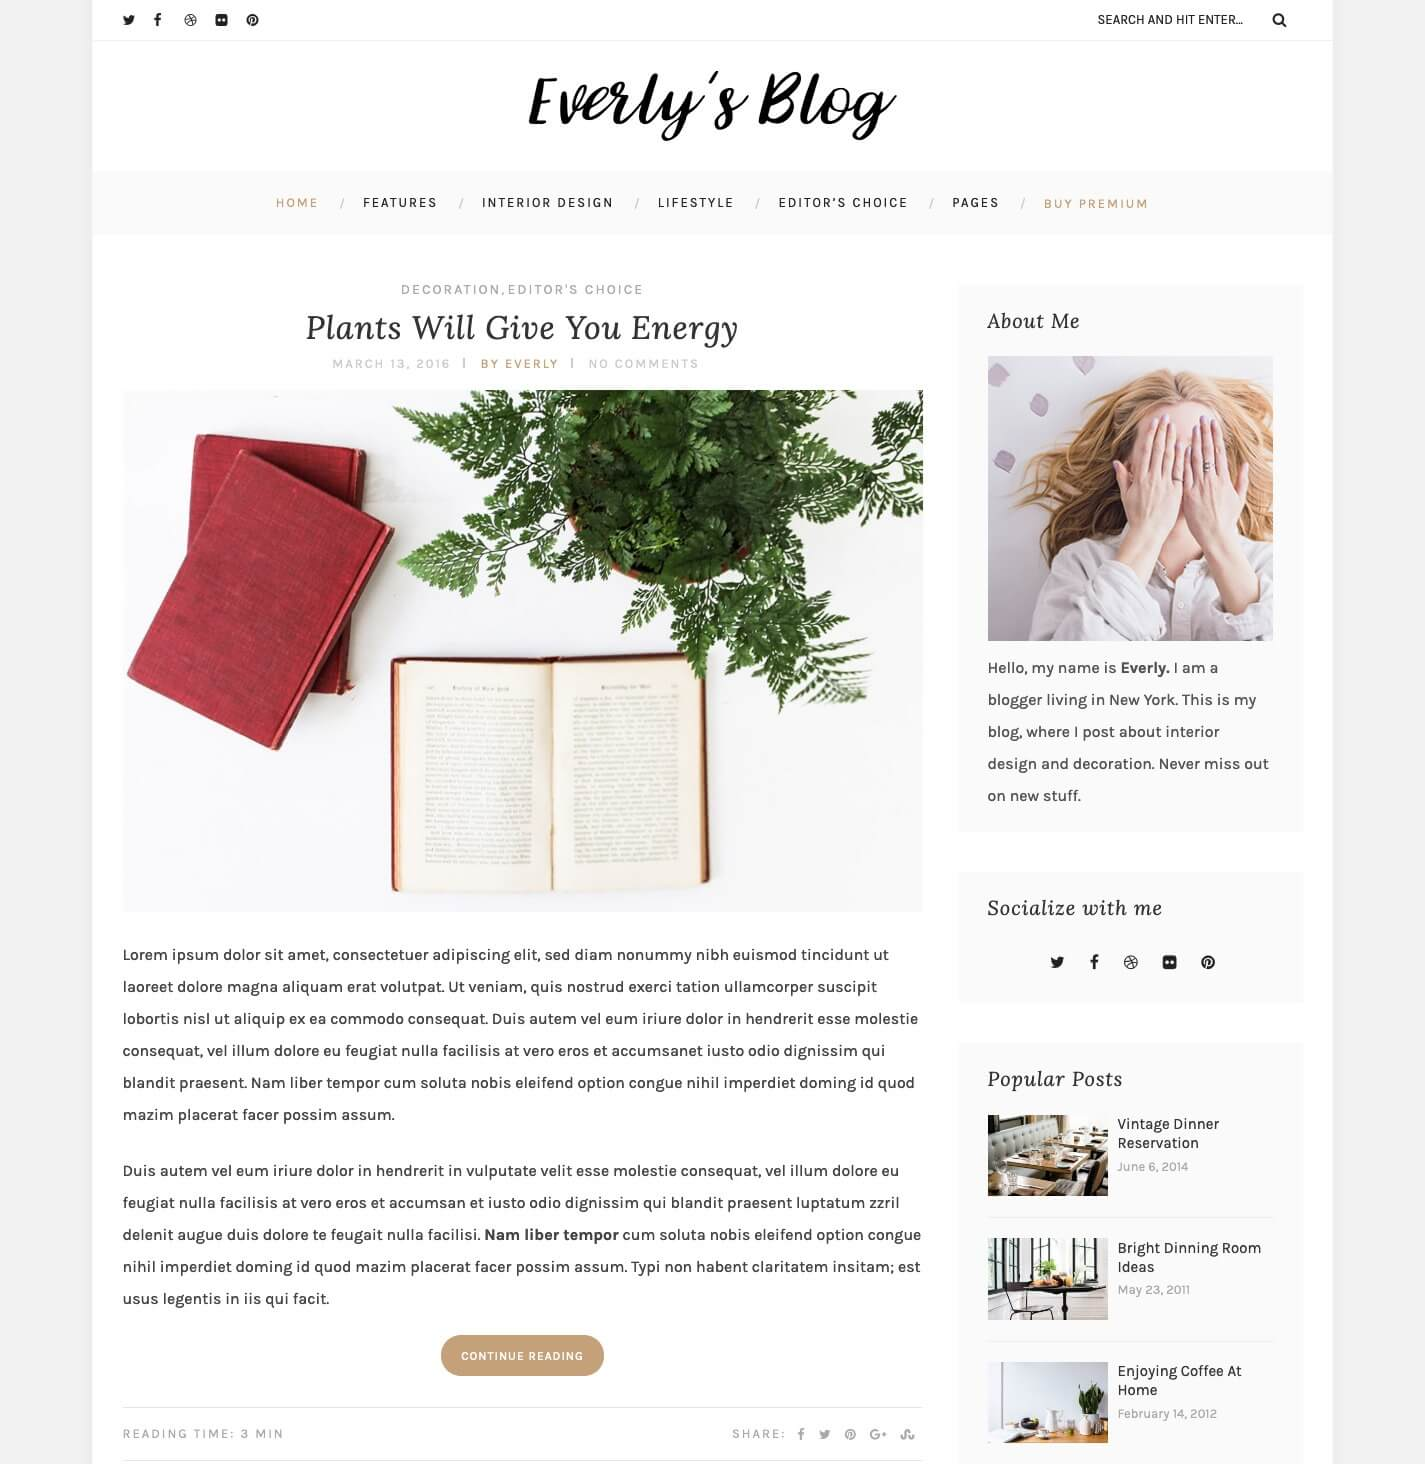 Everly Blog